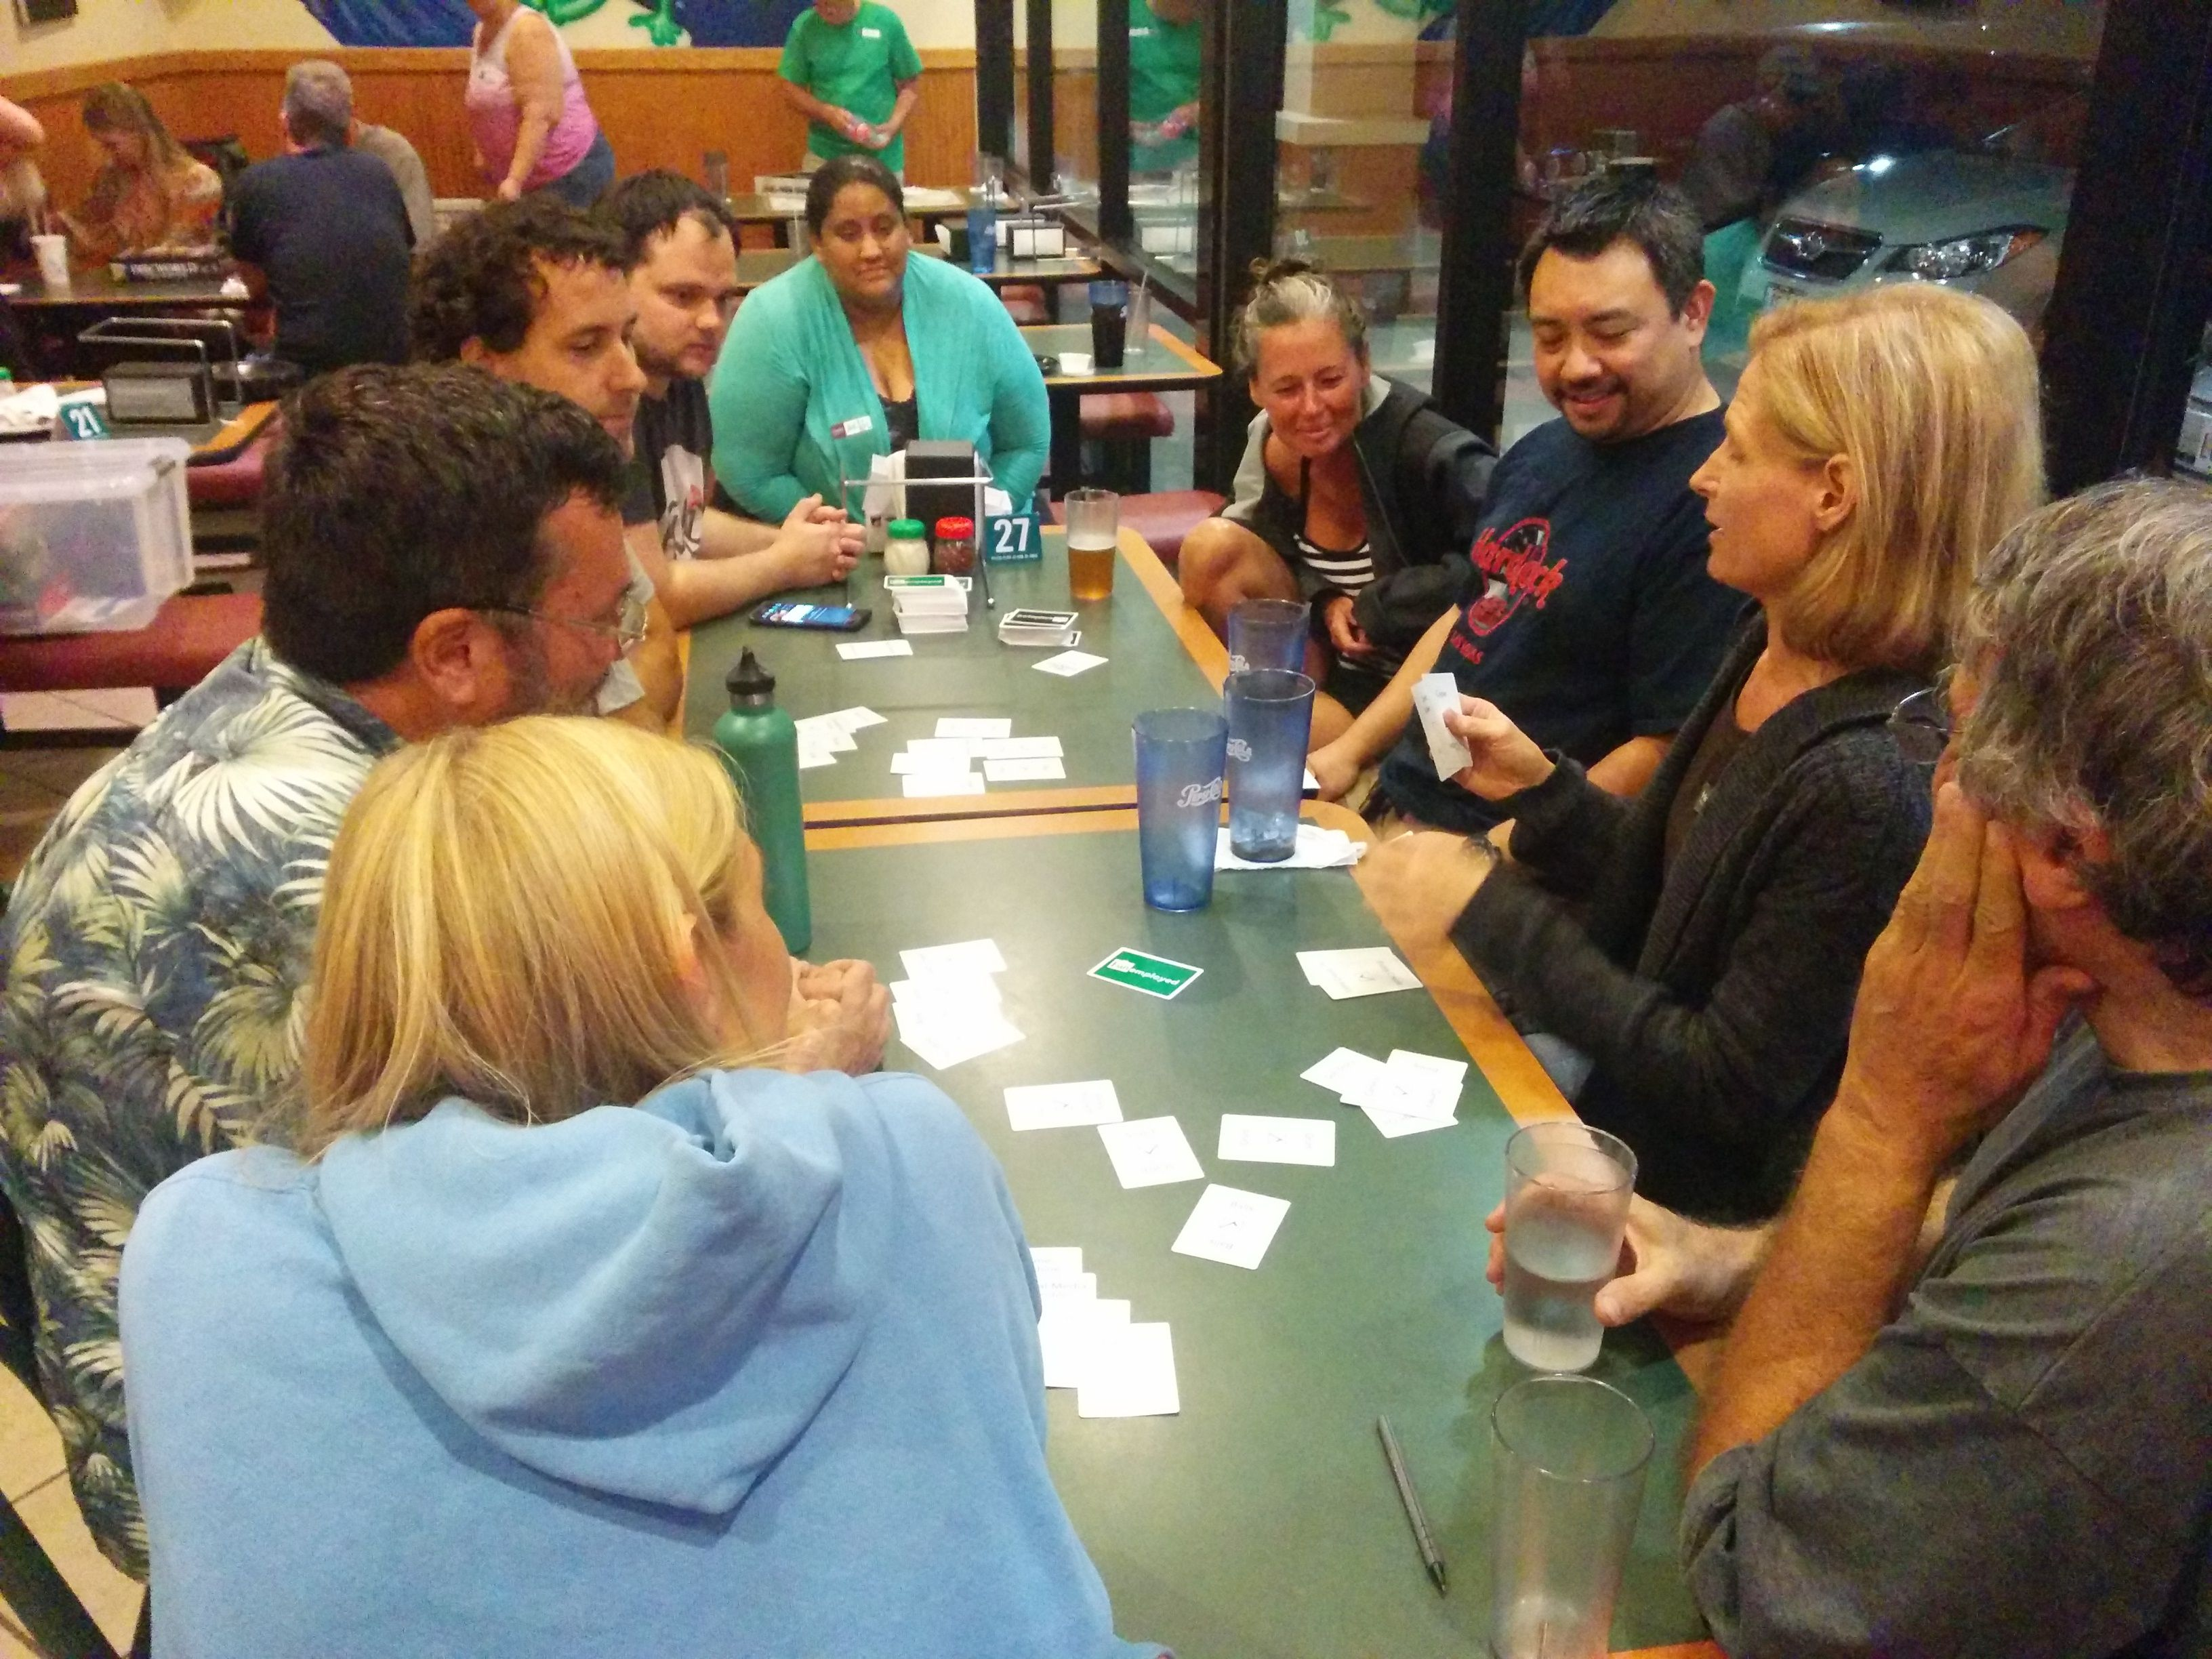 Round Table Pizza Job.Photos Maui Board Game Club Kihei Hi Meetup